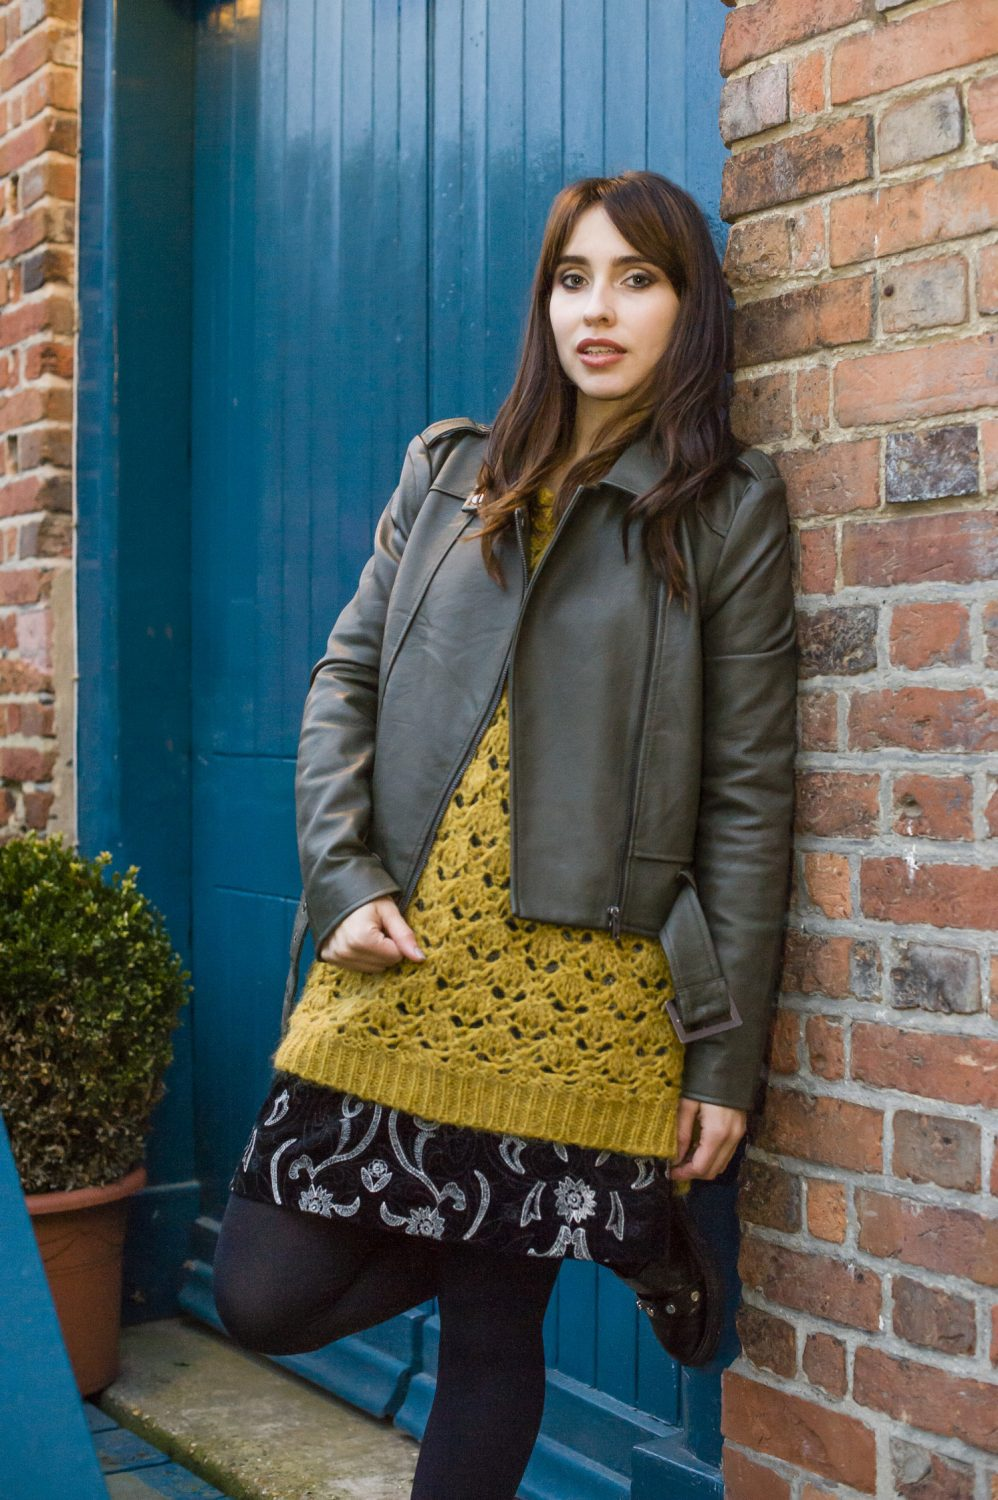 Biker jacket, £79, Embroidered Skirt, £65, The Lilac Room lilacroom.co.uk; Mohair Blend Jumper, £100, Antoine & Lili www.antoineetlili.com; boots stylist's own